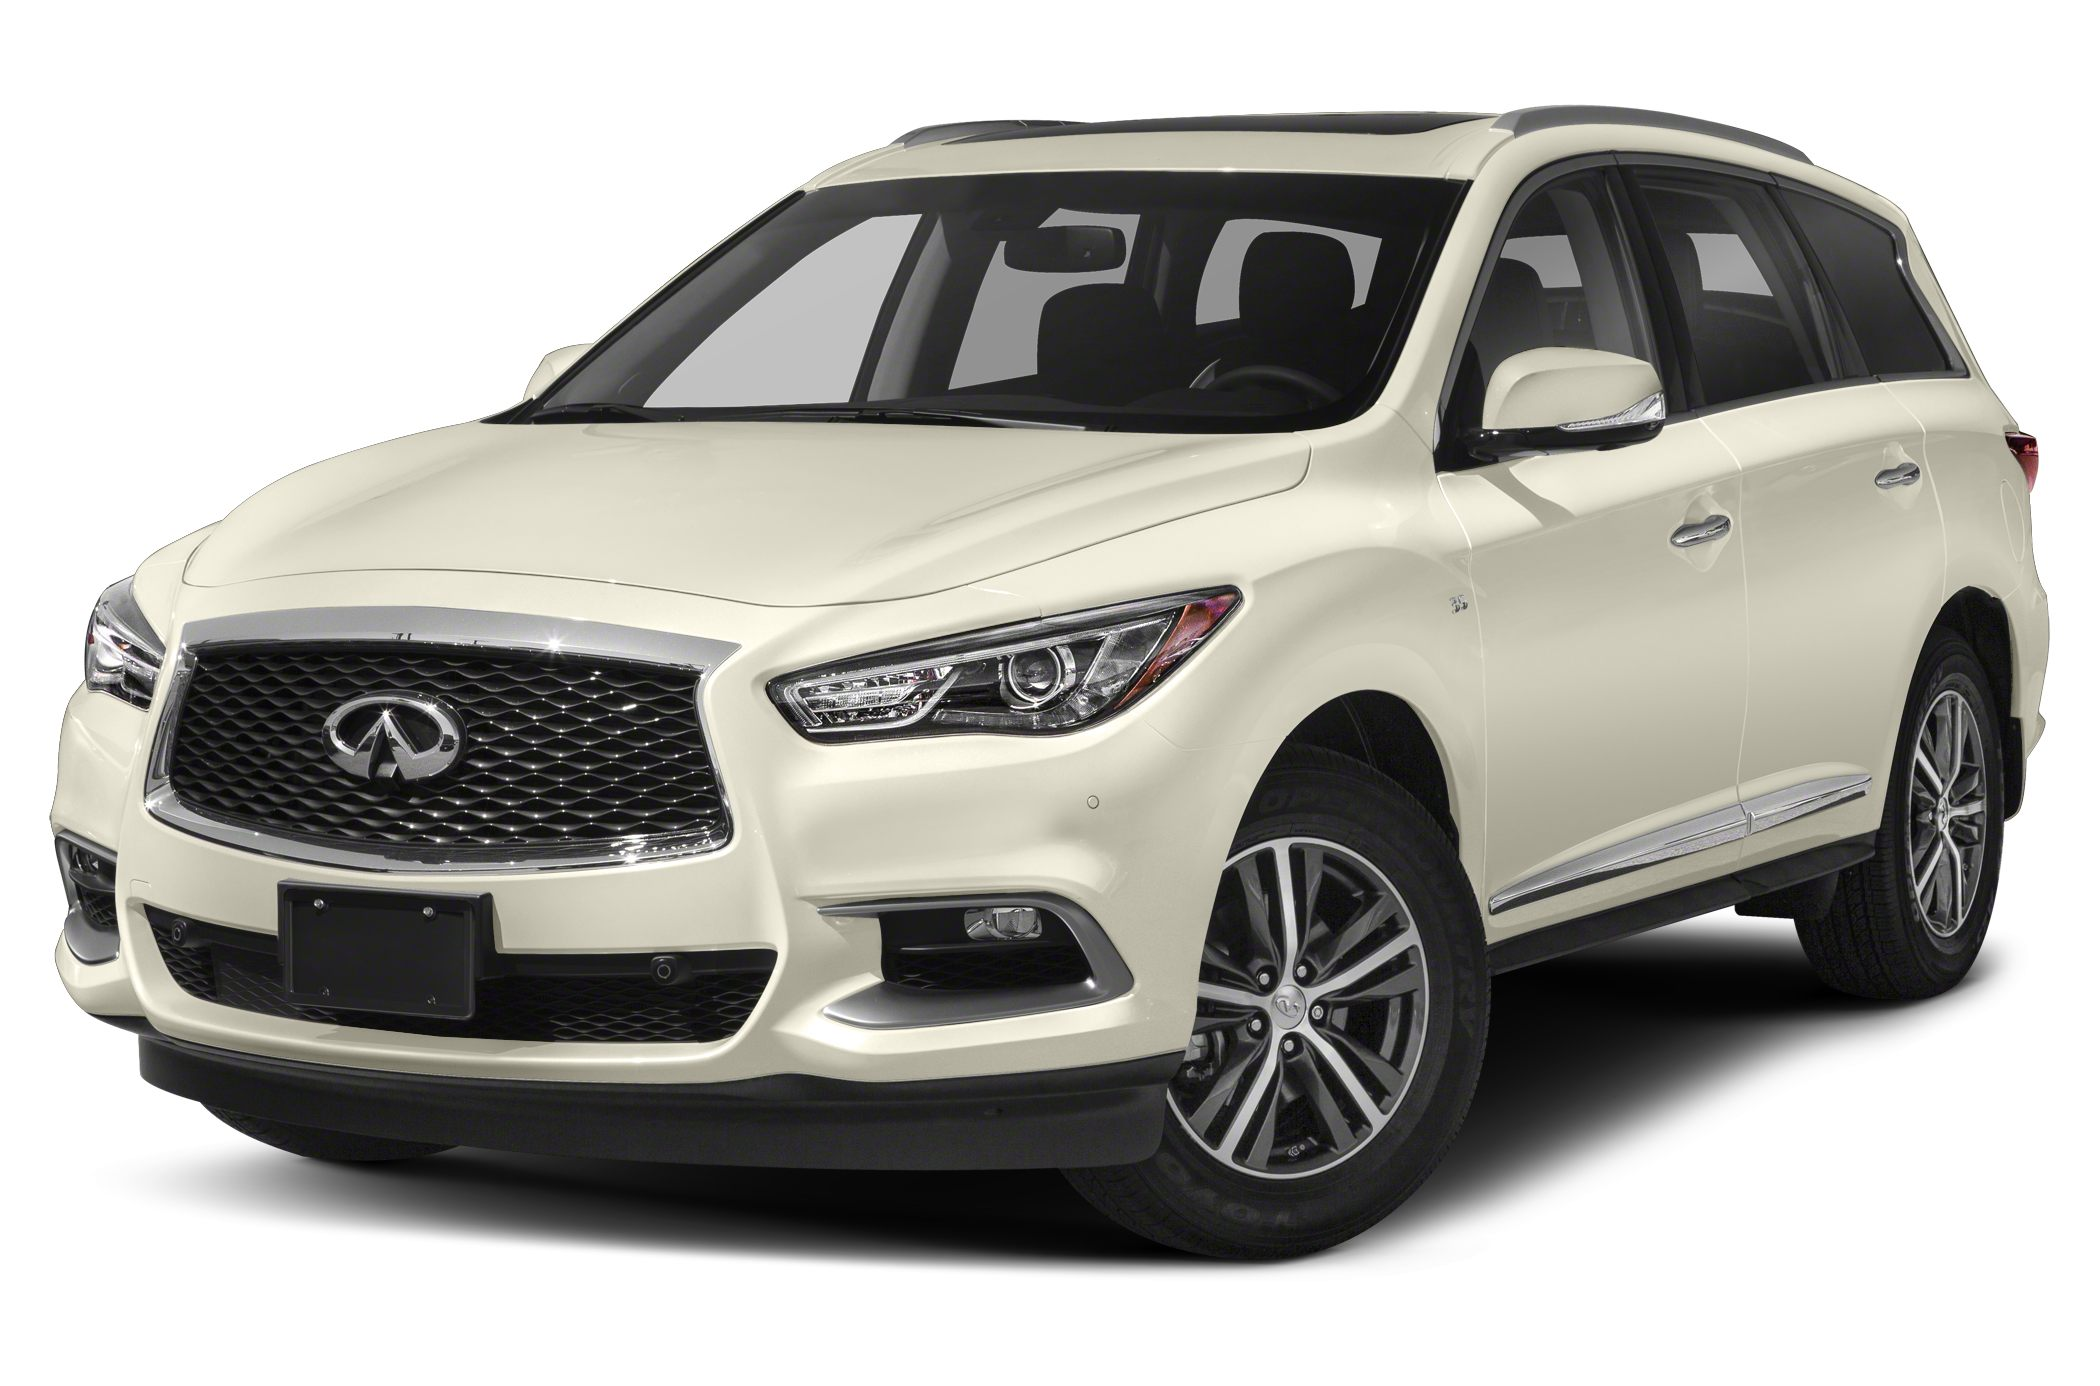 Gmc Acadia Lease >> 2019 INFINITI QX60 Deals, Prices, Incentives & Leases, Overview - CarsDirect